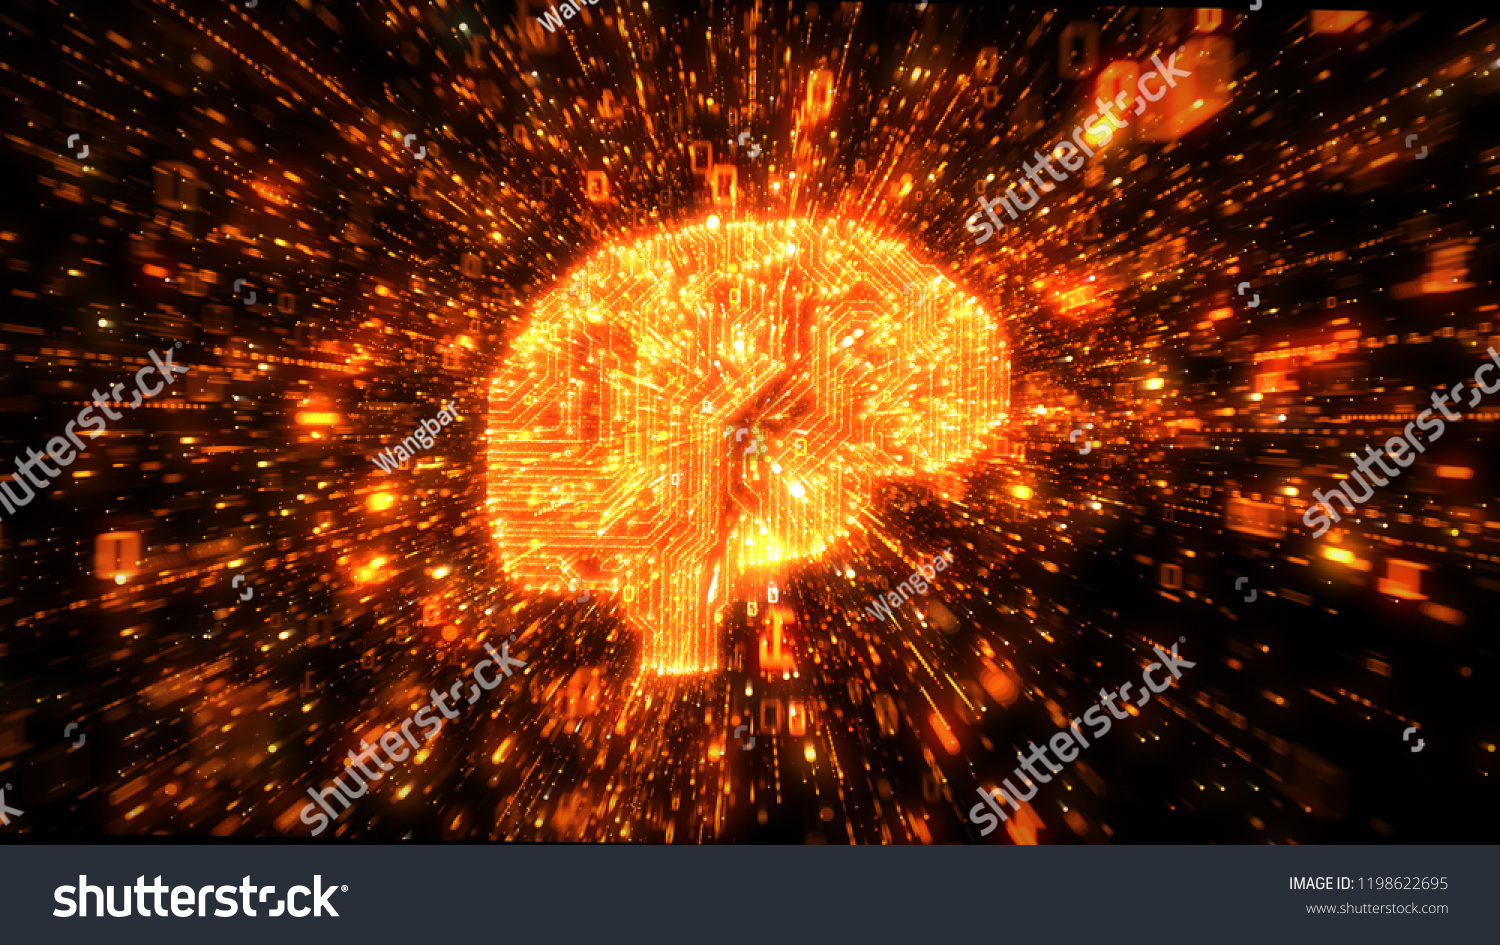 Royalty Free Stock Illustration Of Digital Circuitry Brain Orange An Electronic Calculator Photography With Streams Exploding Binary Data